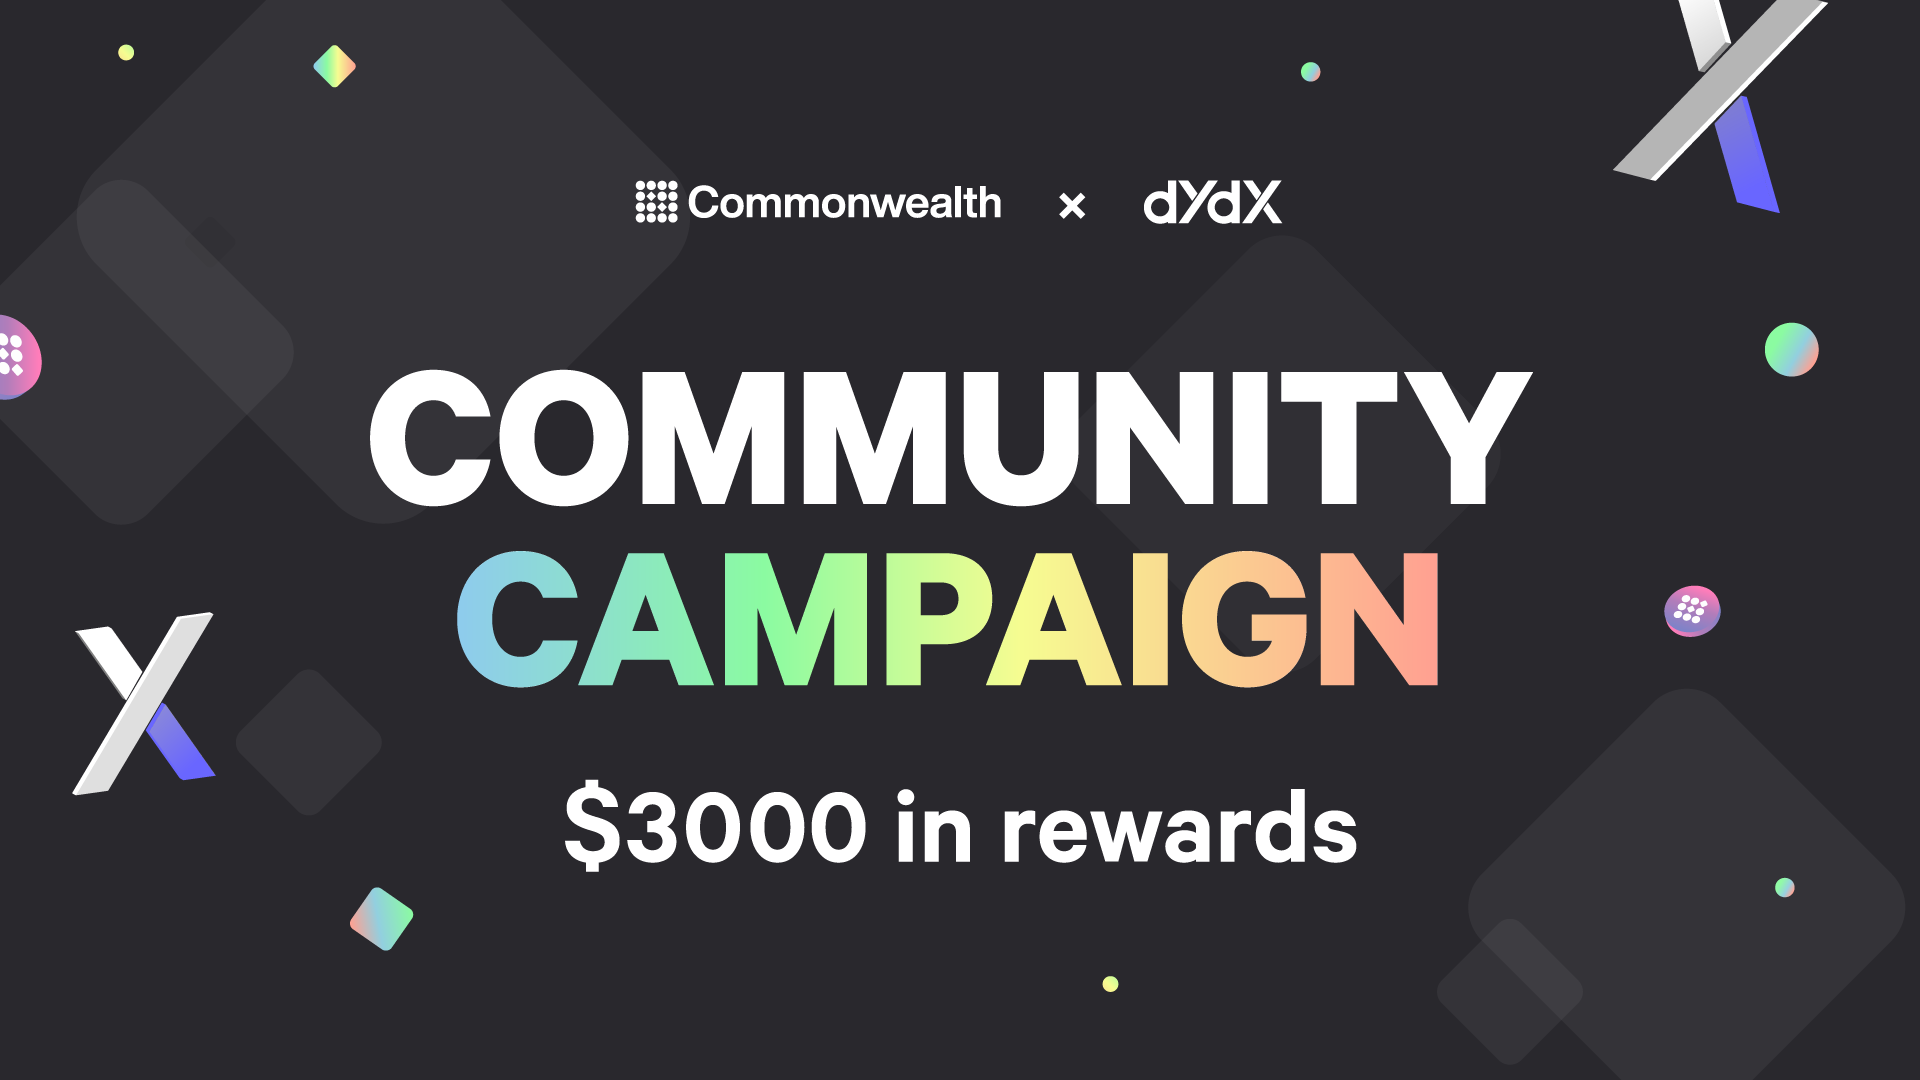 Common x dYdX Community Campaign: Competition Rules